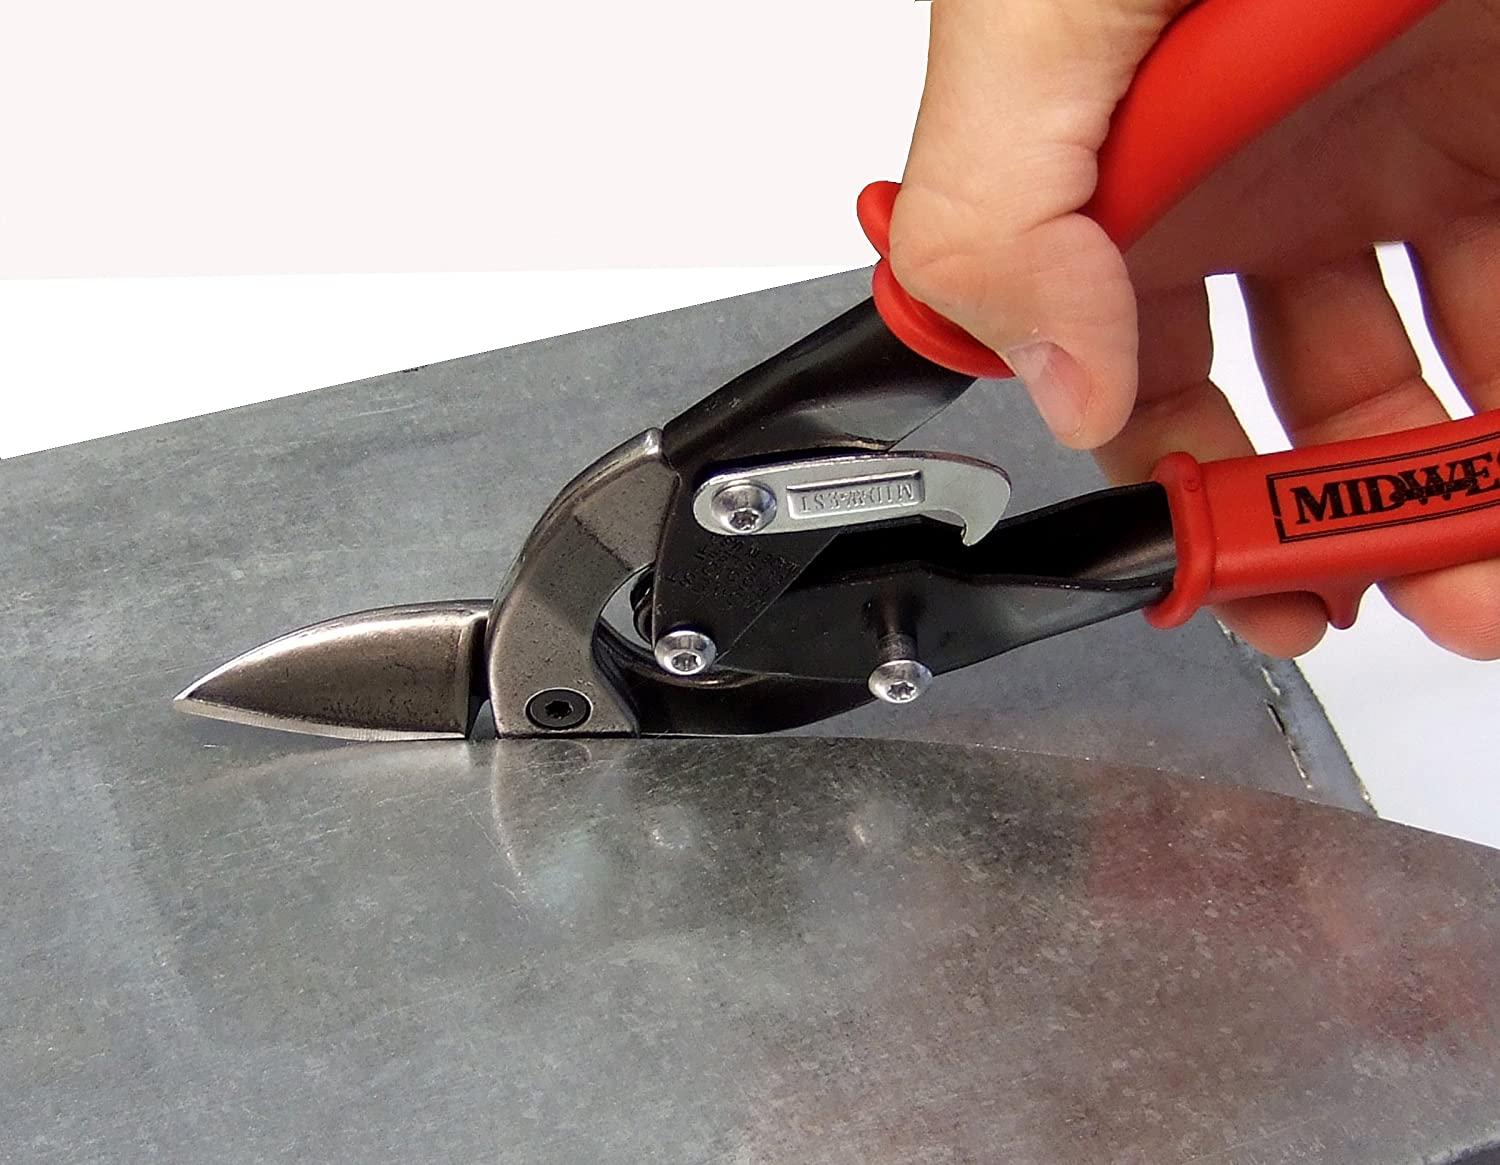 sheet metal cutting tools. midwest aviation snip set - left, right and straight cut offset tin cutting shears with forged blade \u0026 kush\u0027n-power comfort grips mw-p6510rls nippers sheet metal tools